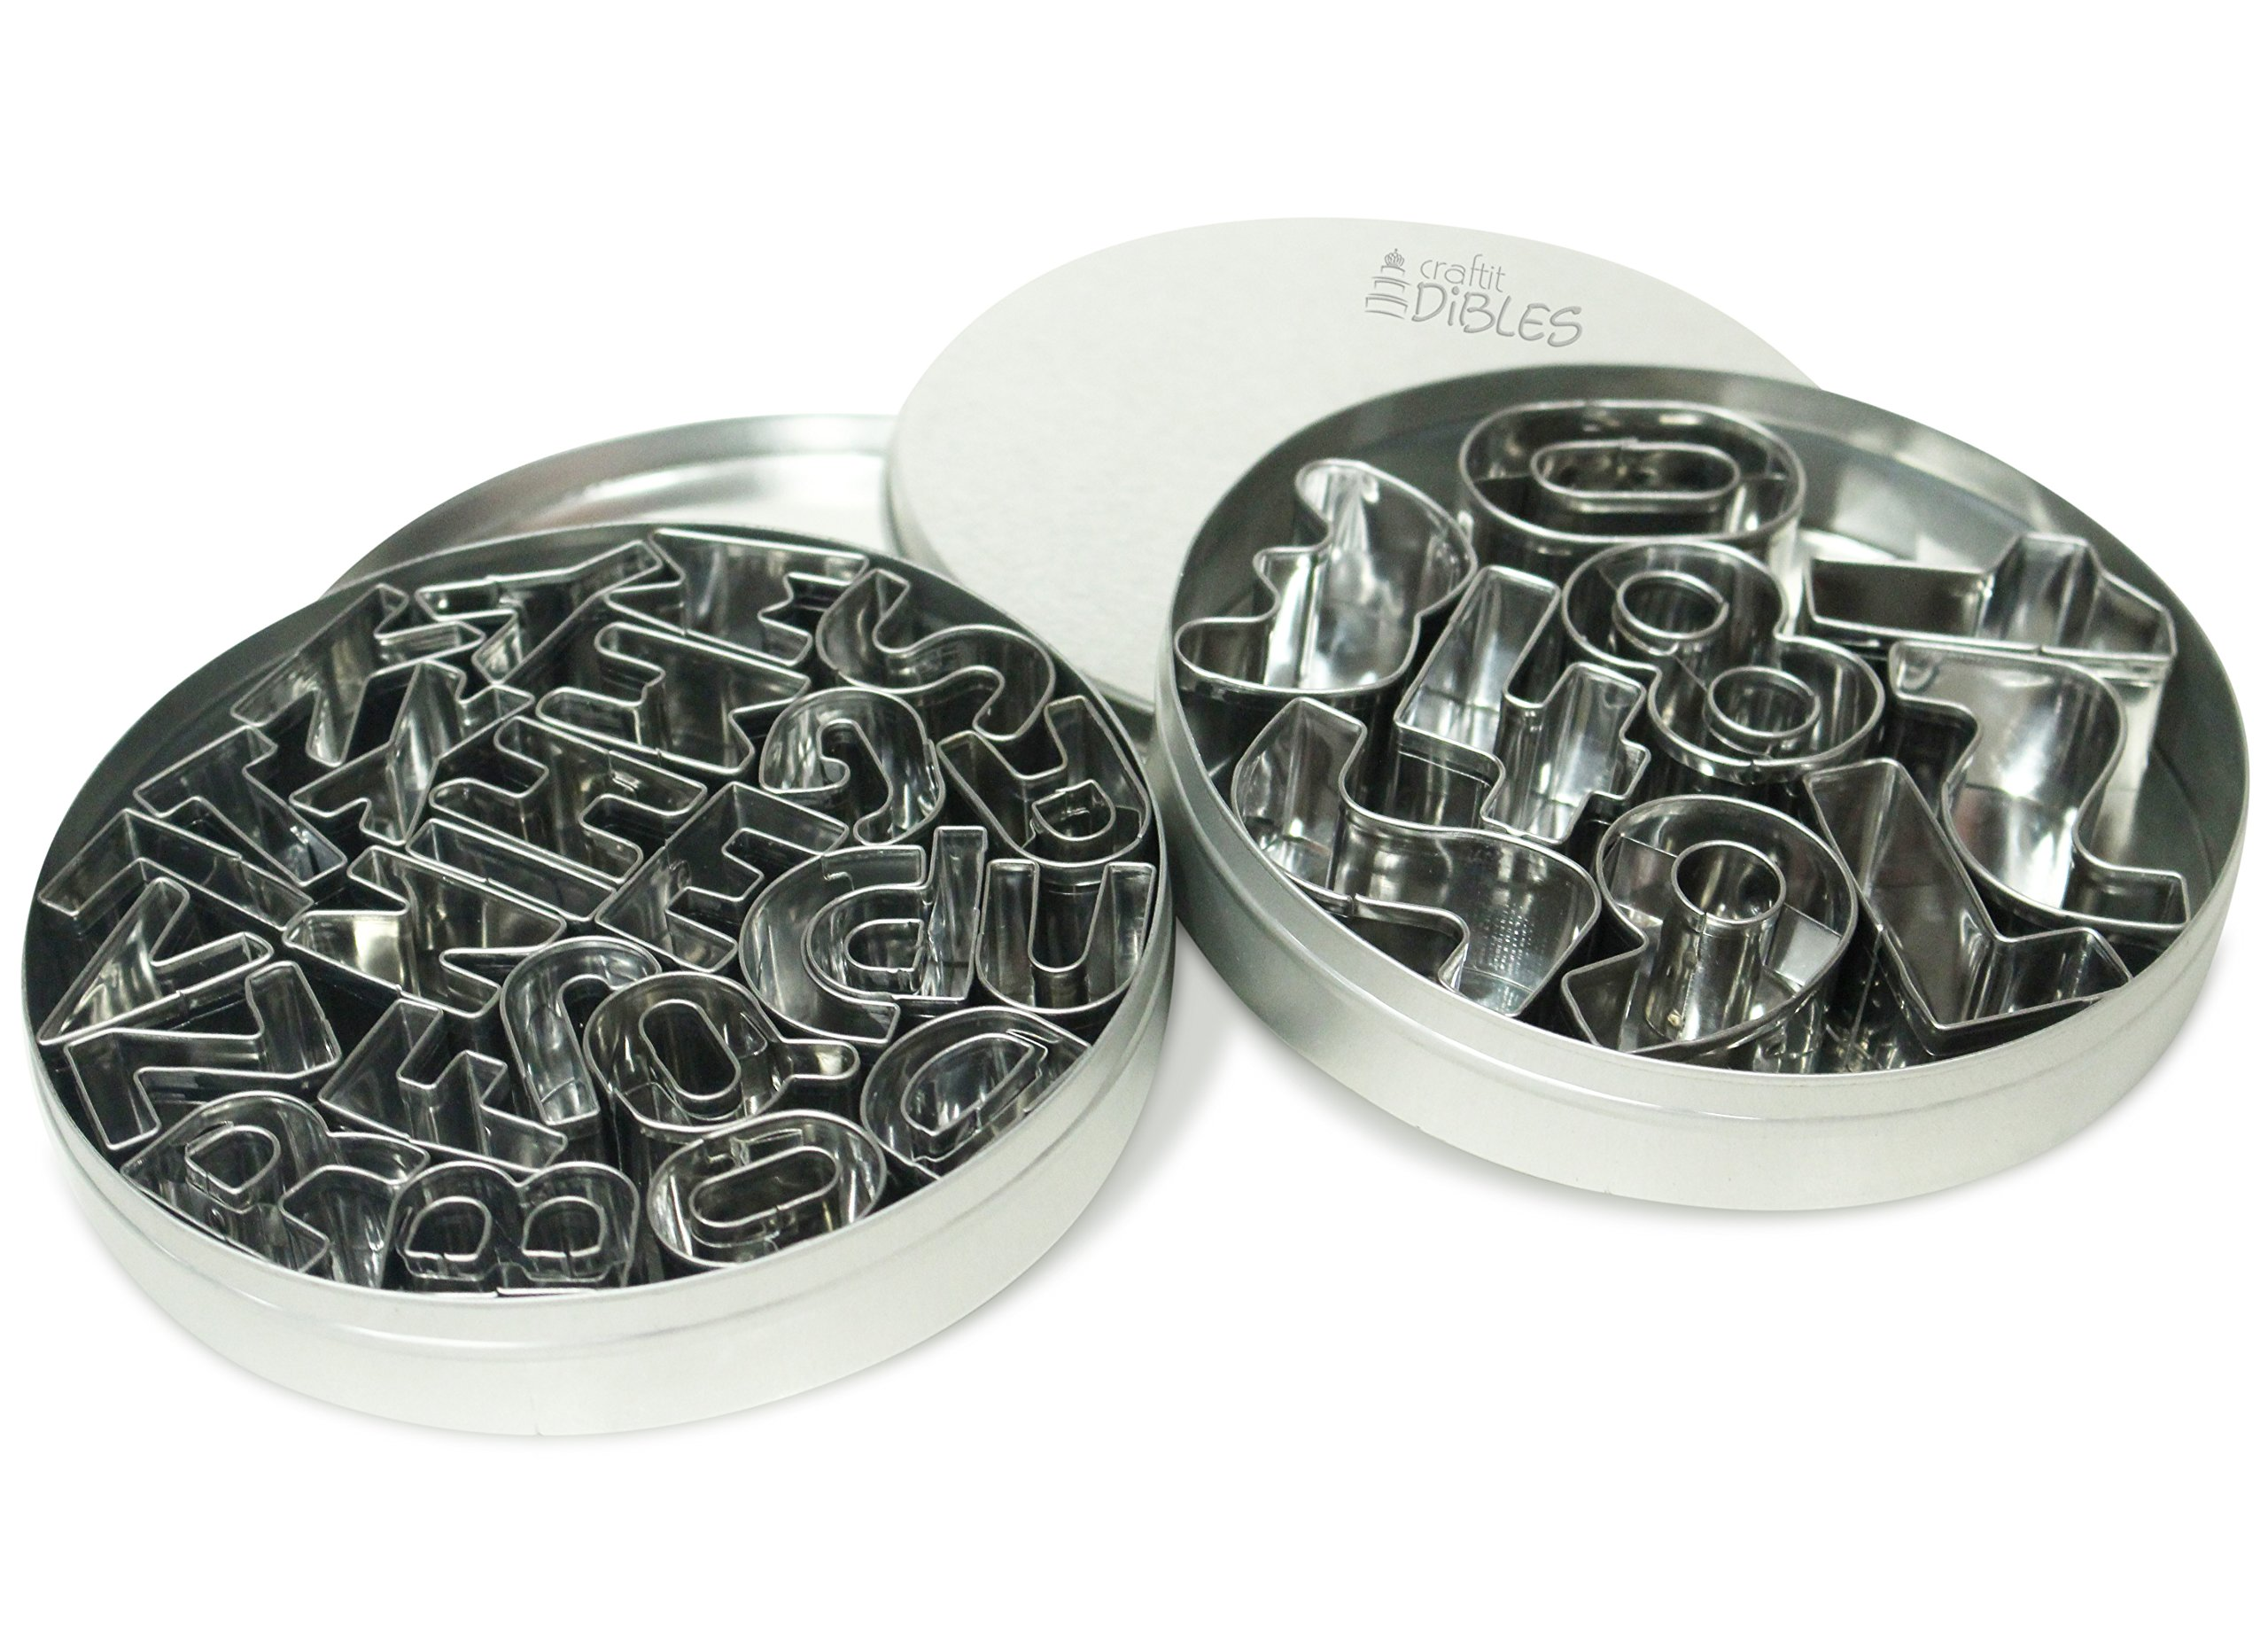 Number & Letter fondant cutters by CiE - 35 Pcs, Mini alphabet and number cookie cutter set. Includes storage boxes and recipe. by Craftit Edibles